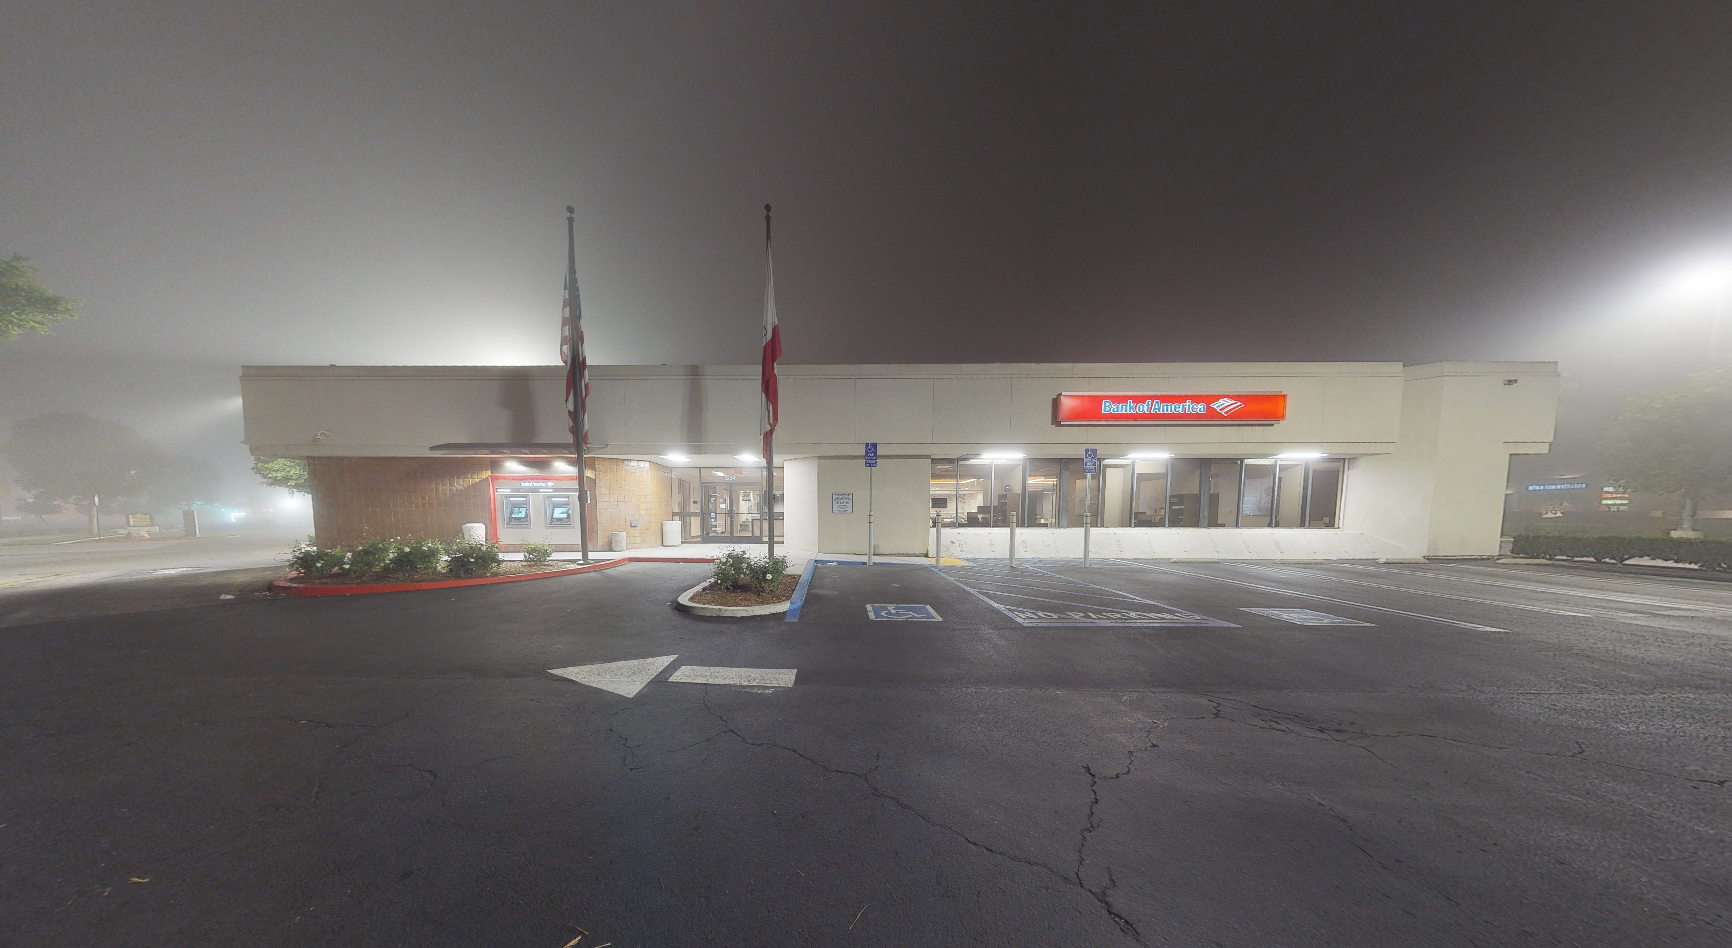 Bank of America financial center with walk-up ATM | 13341 Newport Ave, Tustin, CA 92780